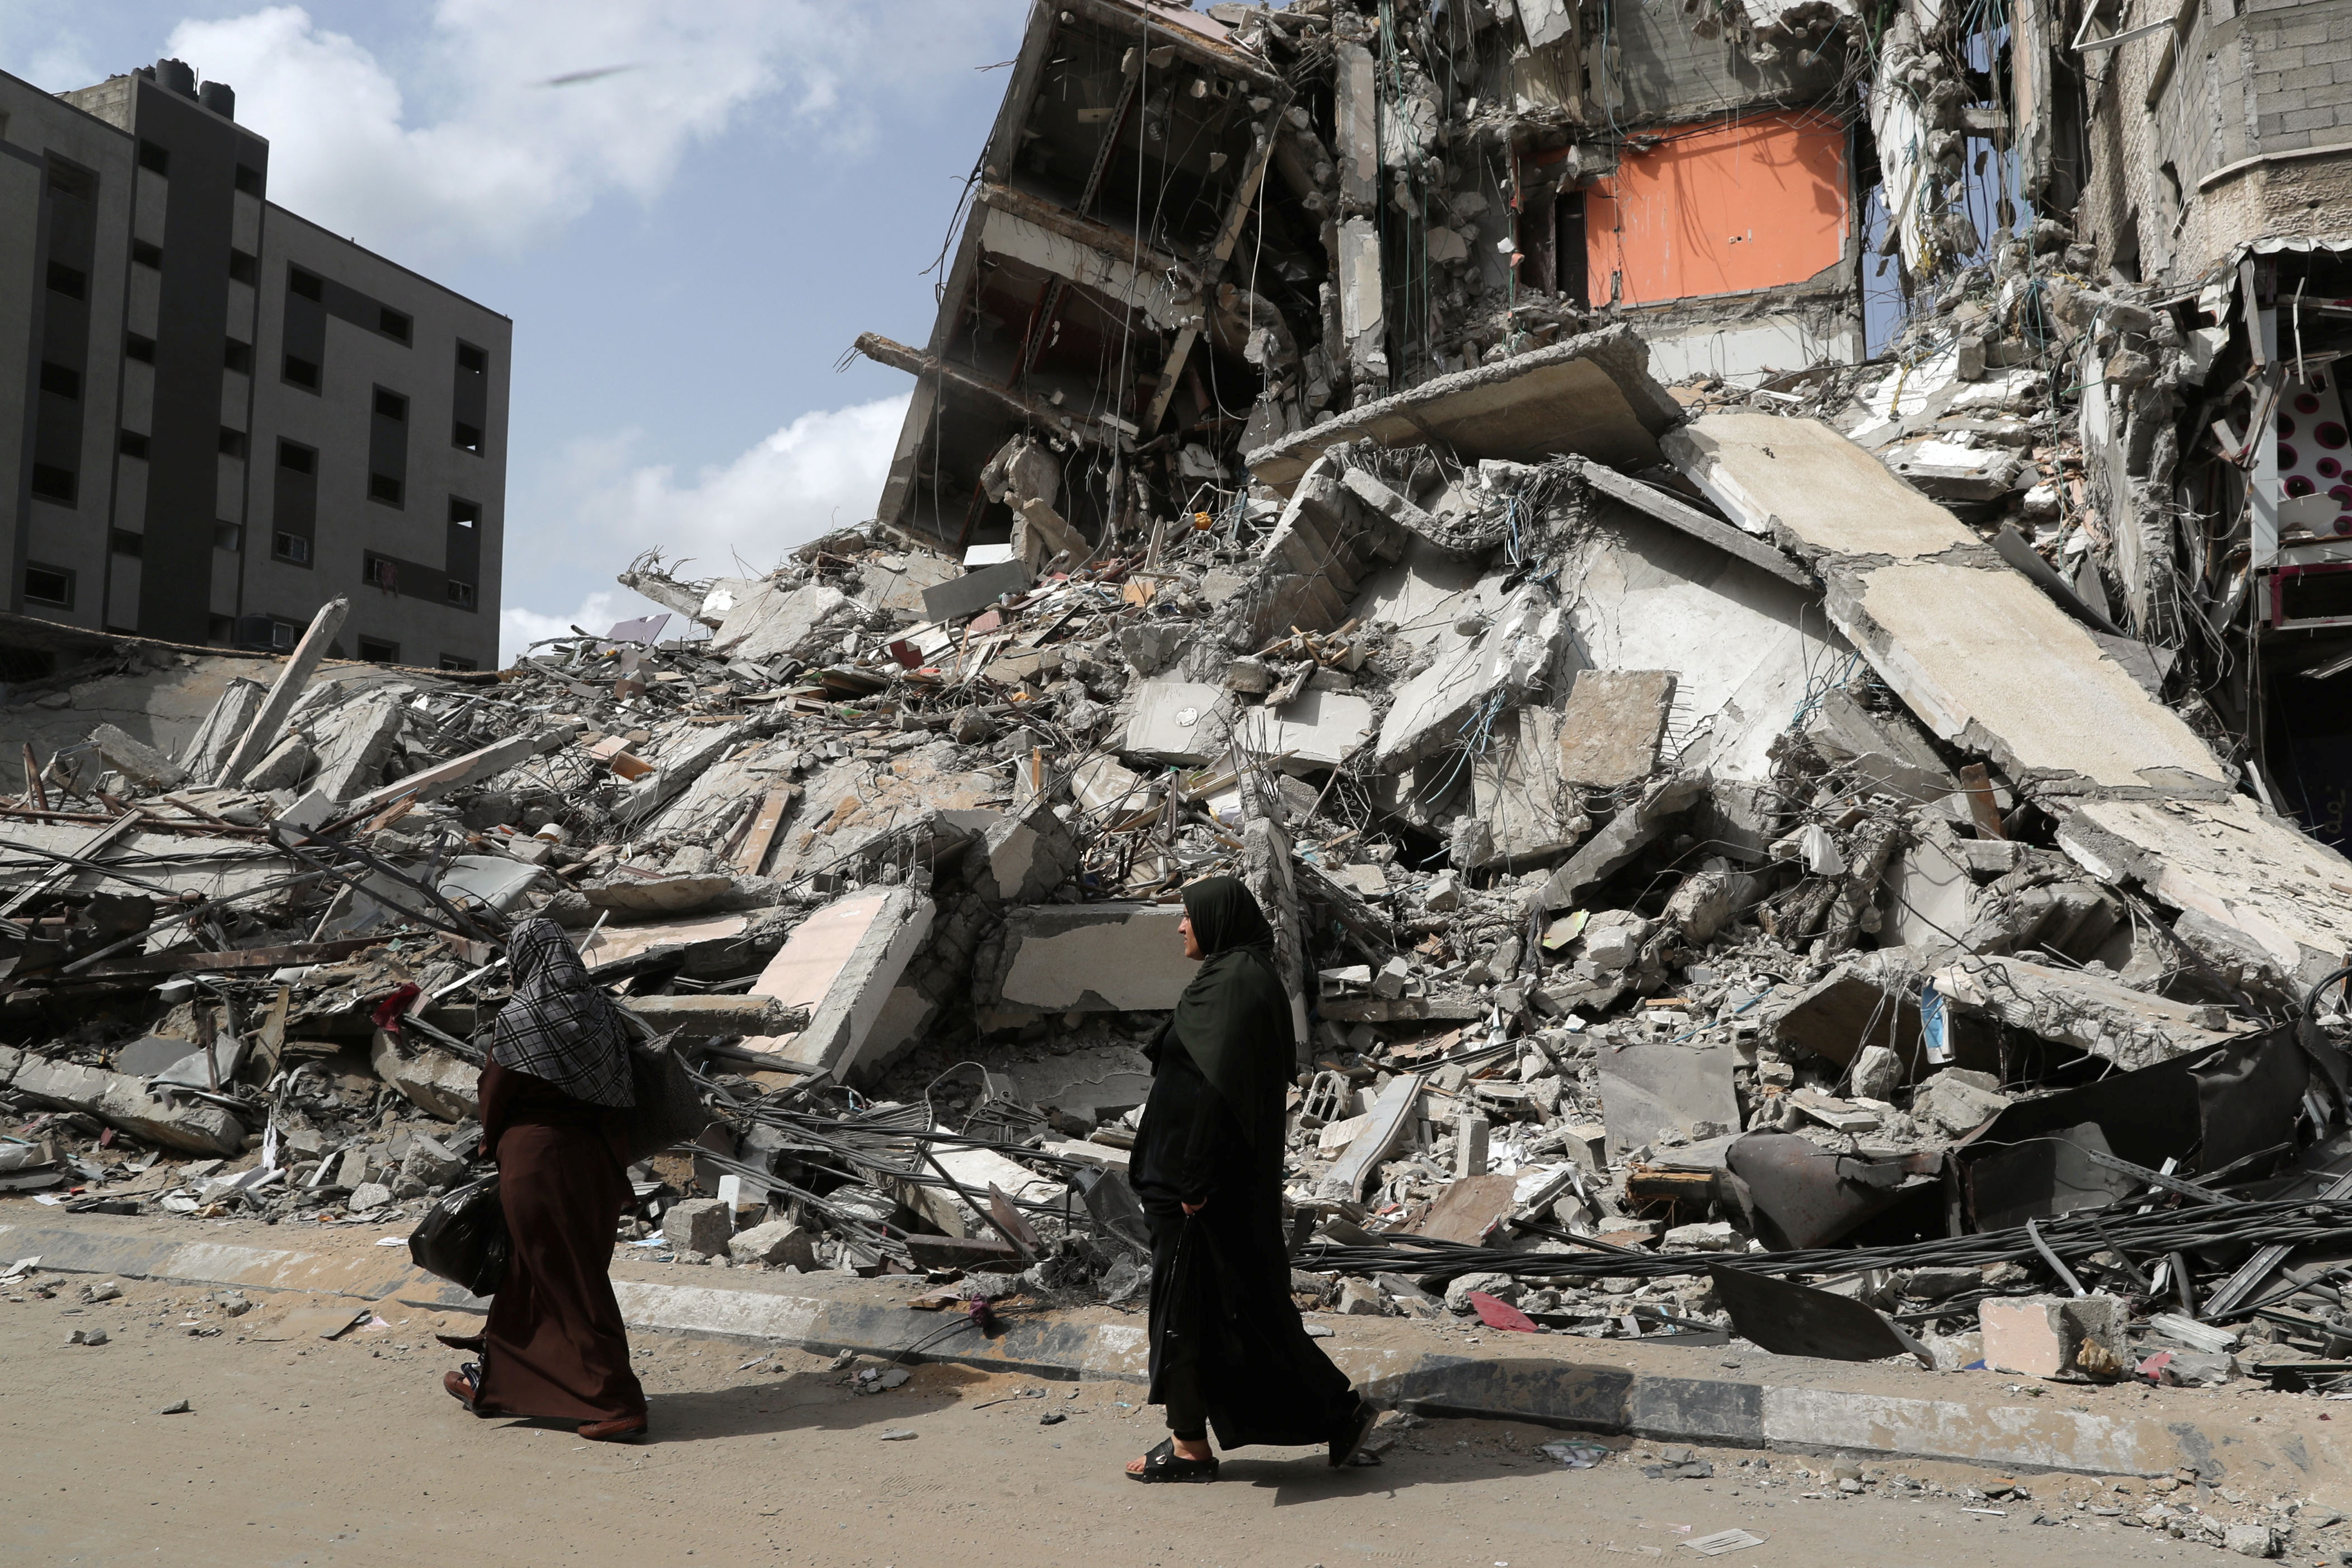 Palestinians walk past the ruins of a building destroyed in an Israeli air strike in the recent cross-border violence between Palestinian militants and Israel, in Gaza May 21, 2021. REUTERS/Suhaib Salem